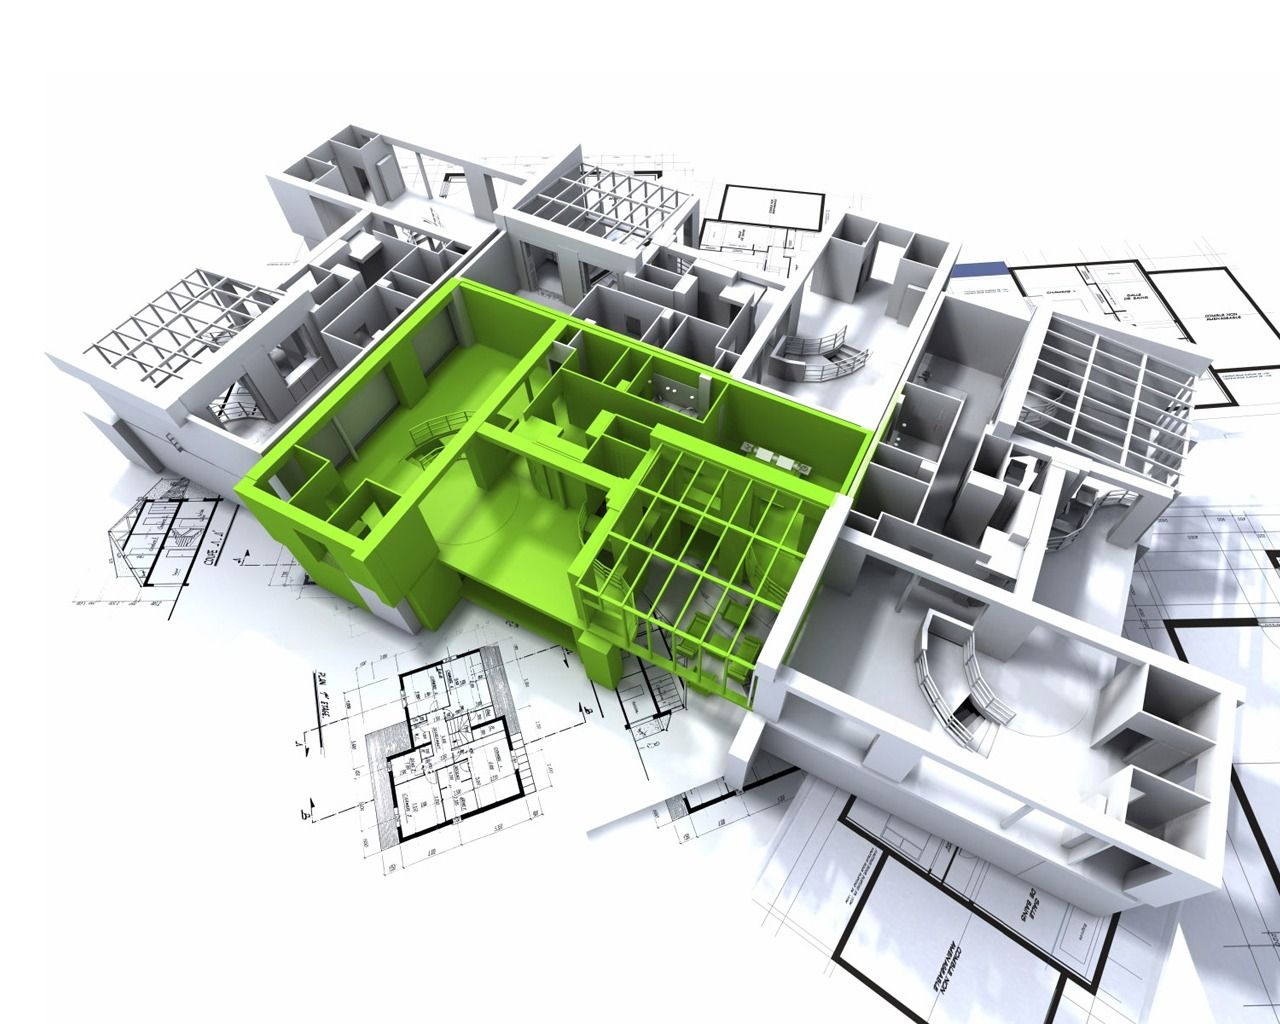 3d Models Autocad Or Actual Hand Model Helps With Visual Autocad 3d Building Design - Cad Design Firms